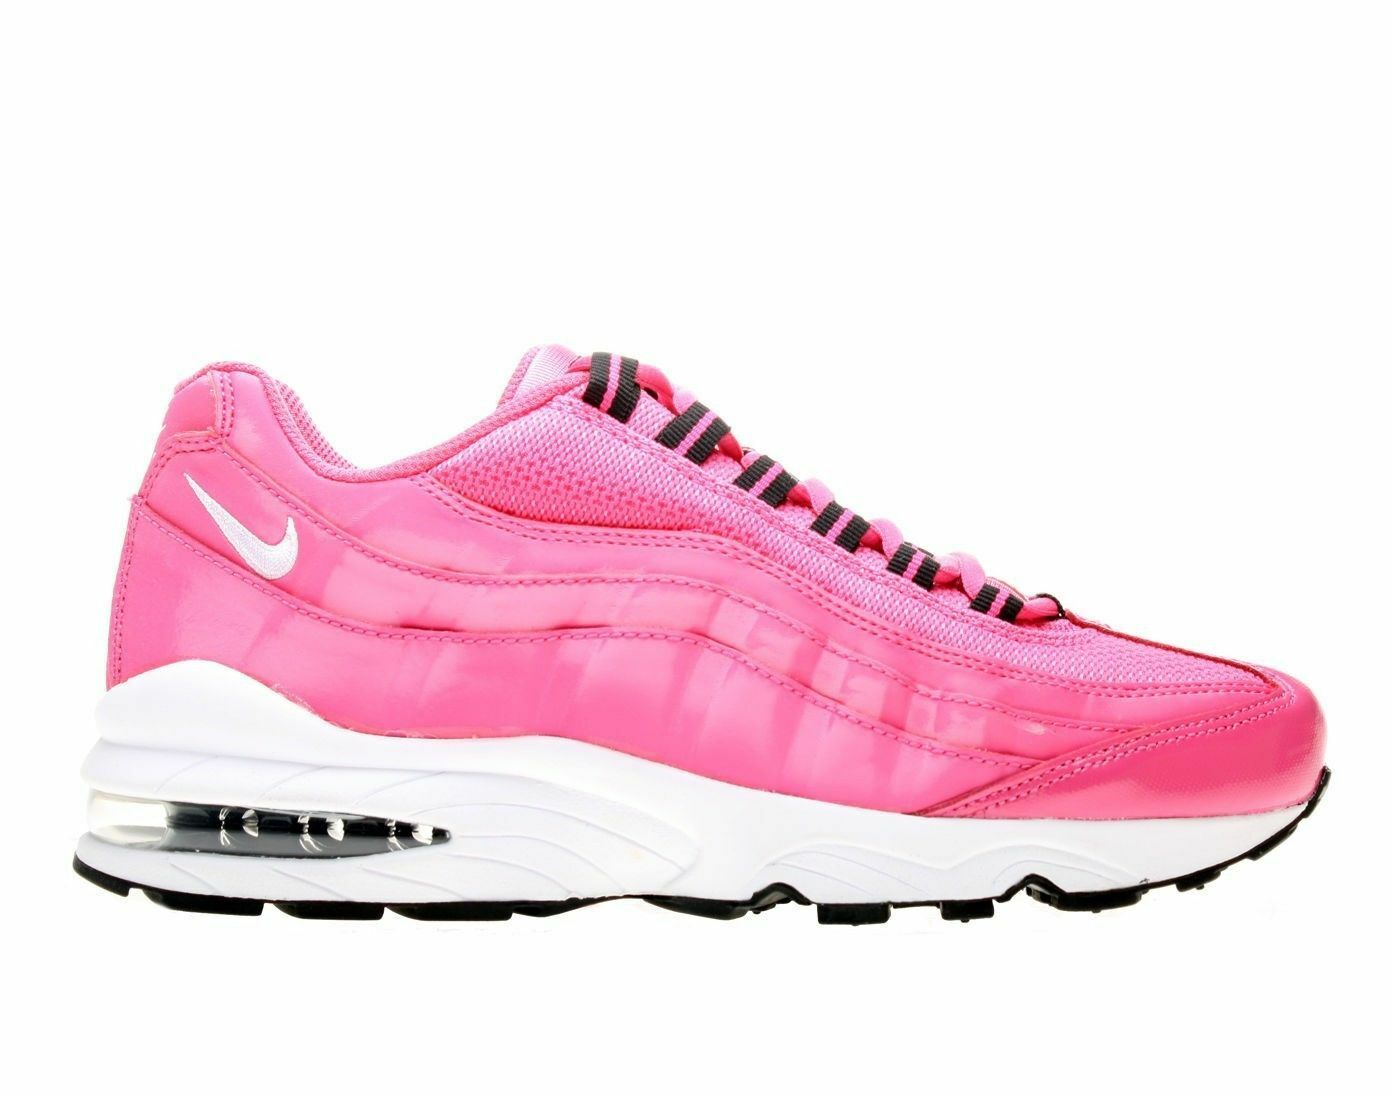 nike air max 95 le - girls preschool activities